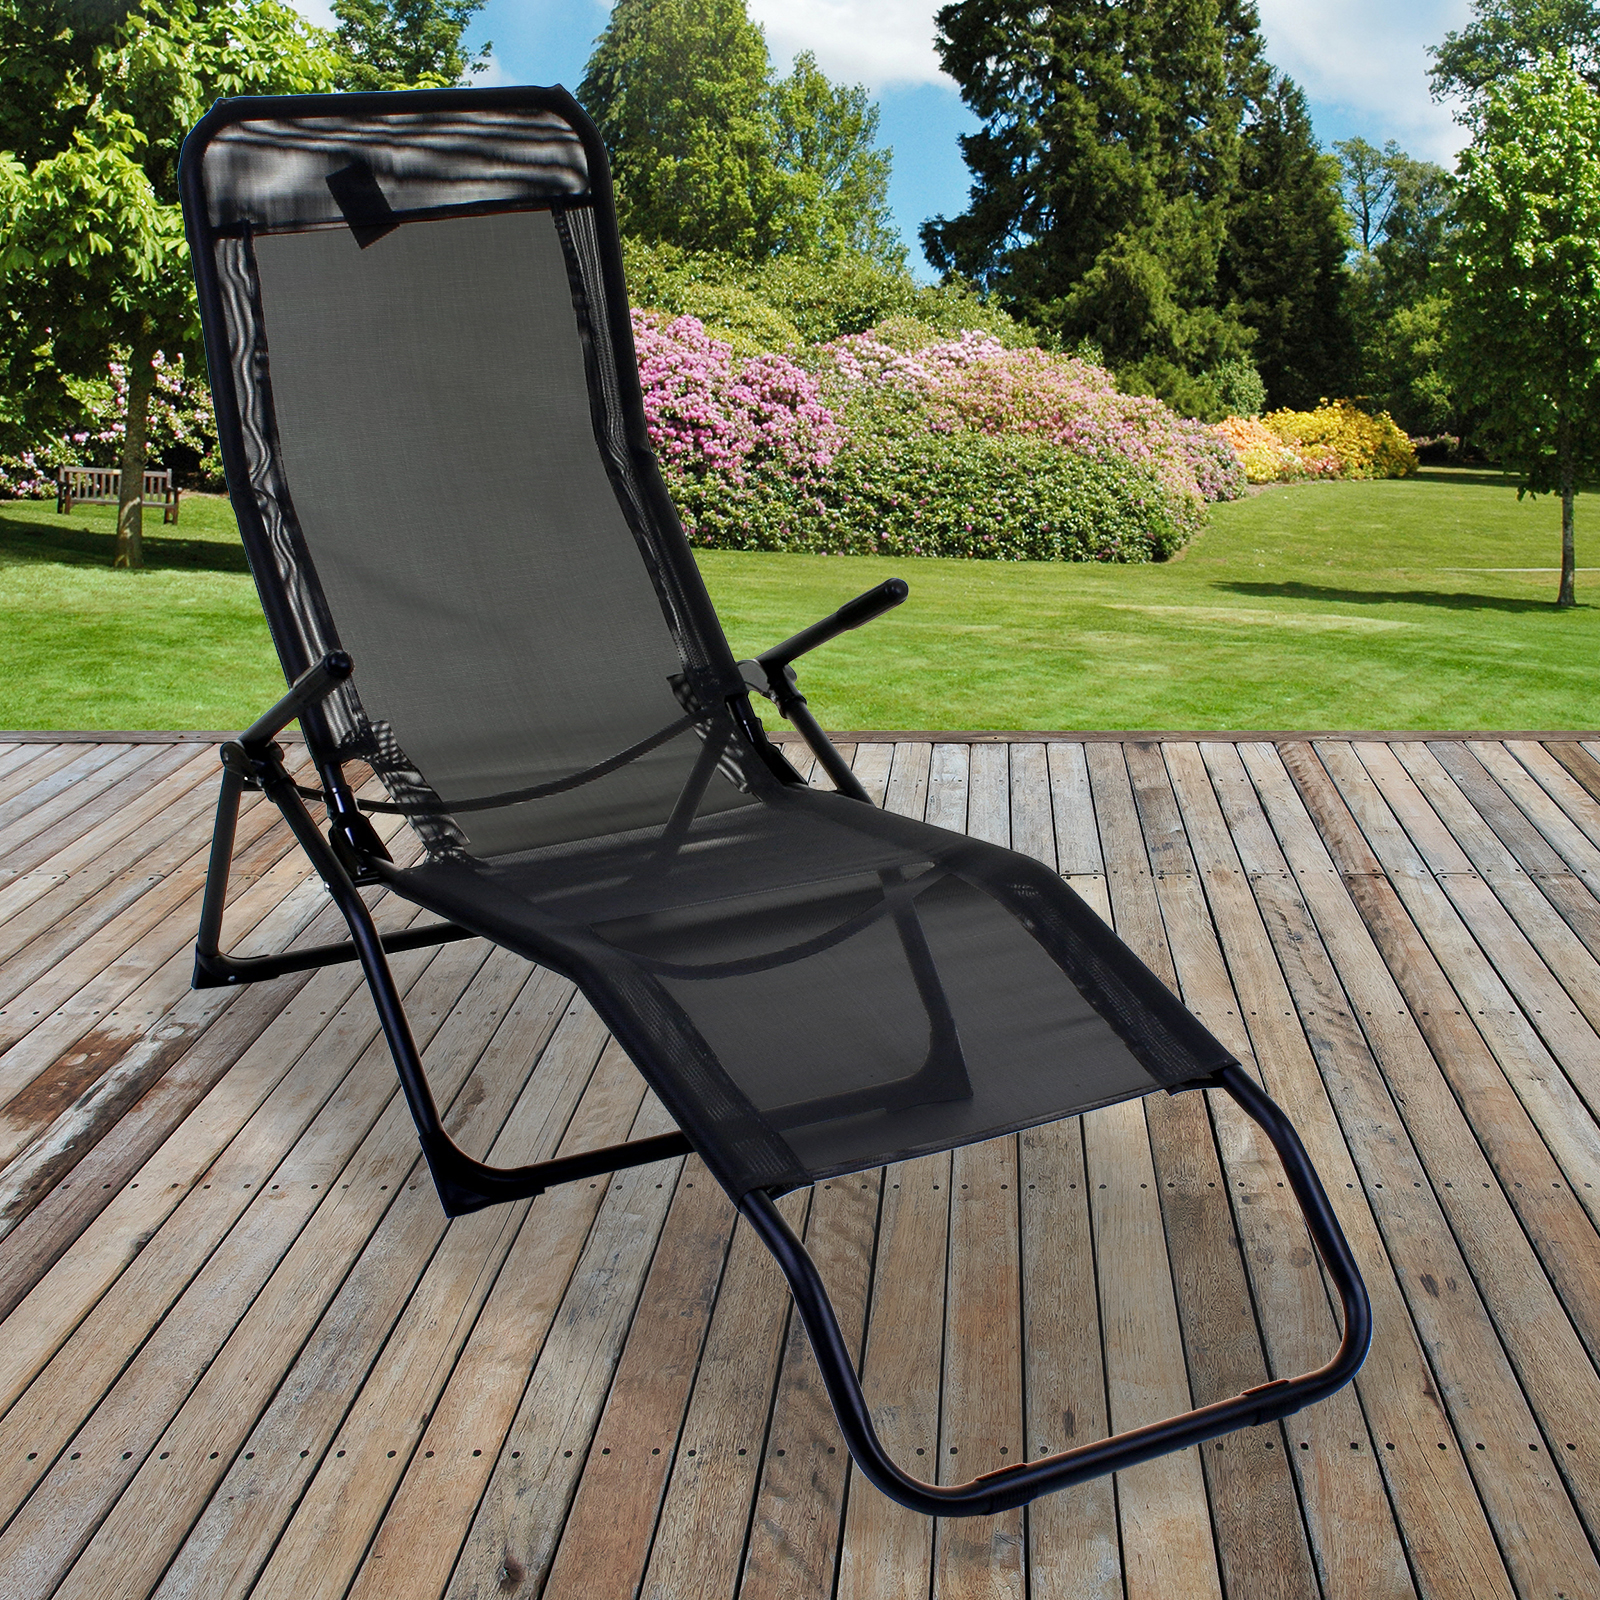 11x Marko Sun Lounger Go Flat Reclining Garden Outdoor Patio